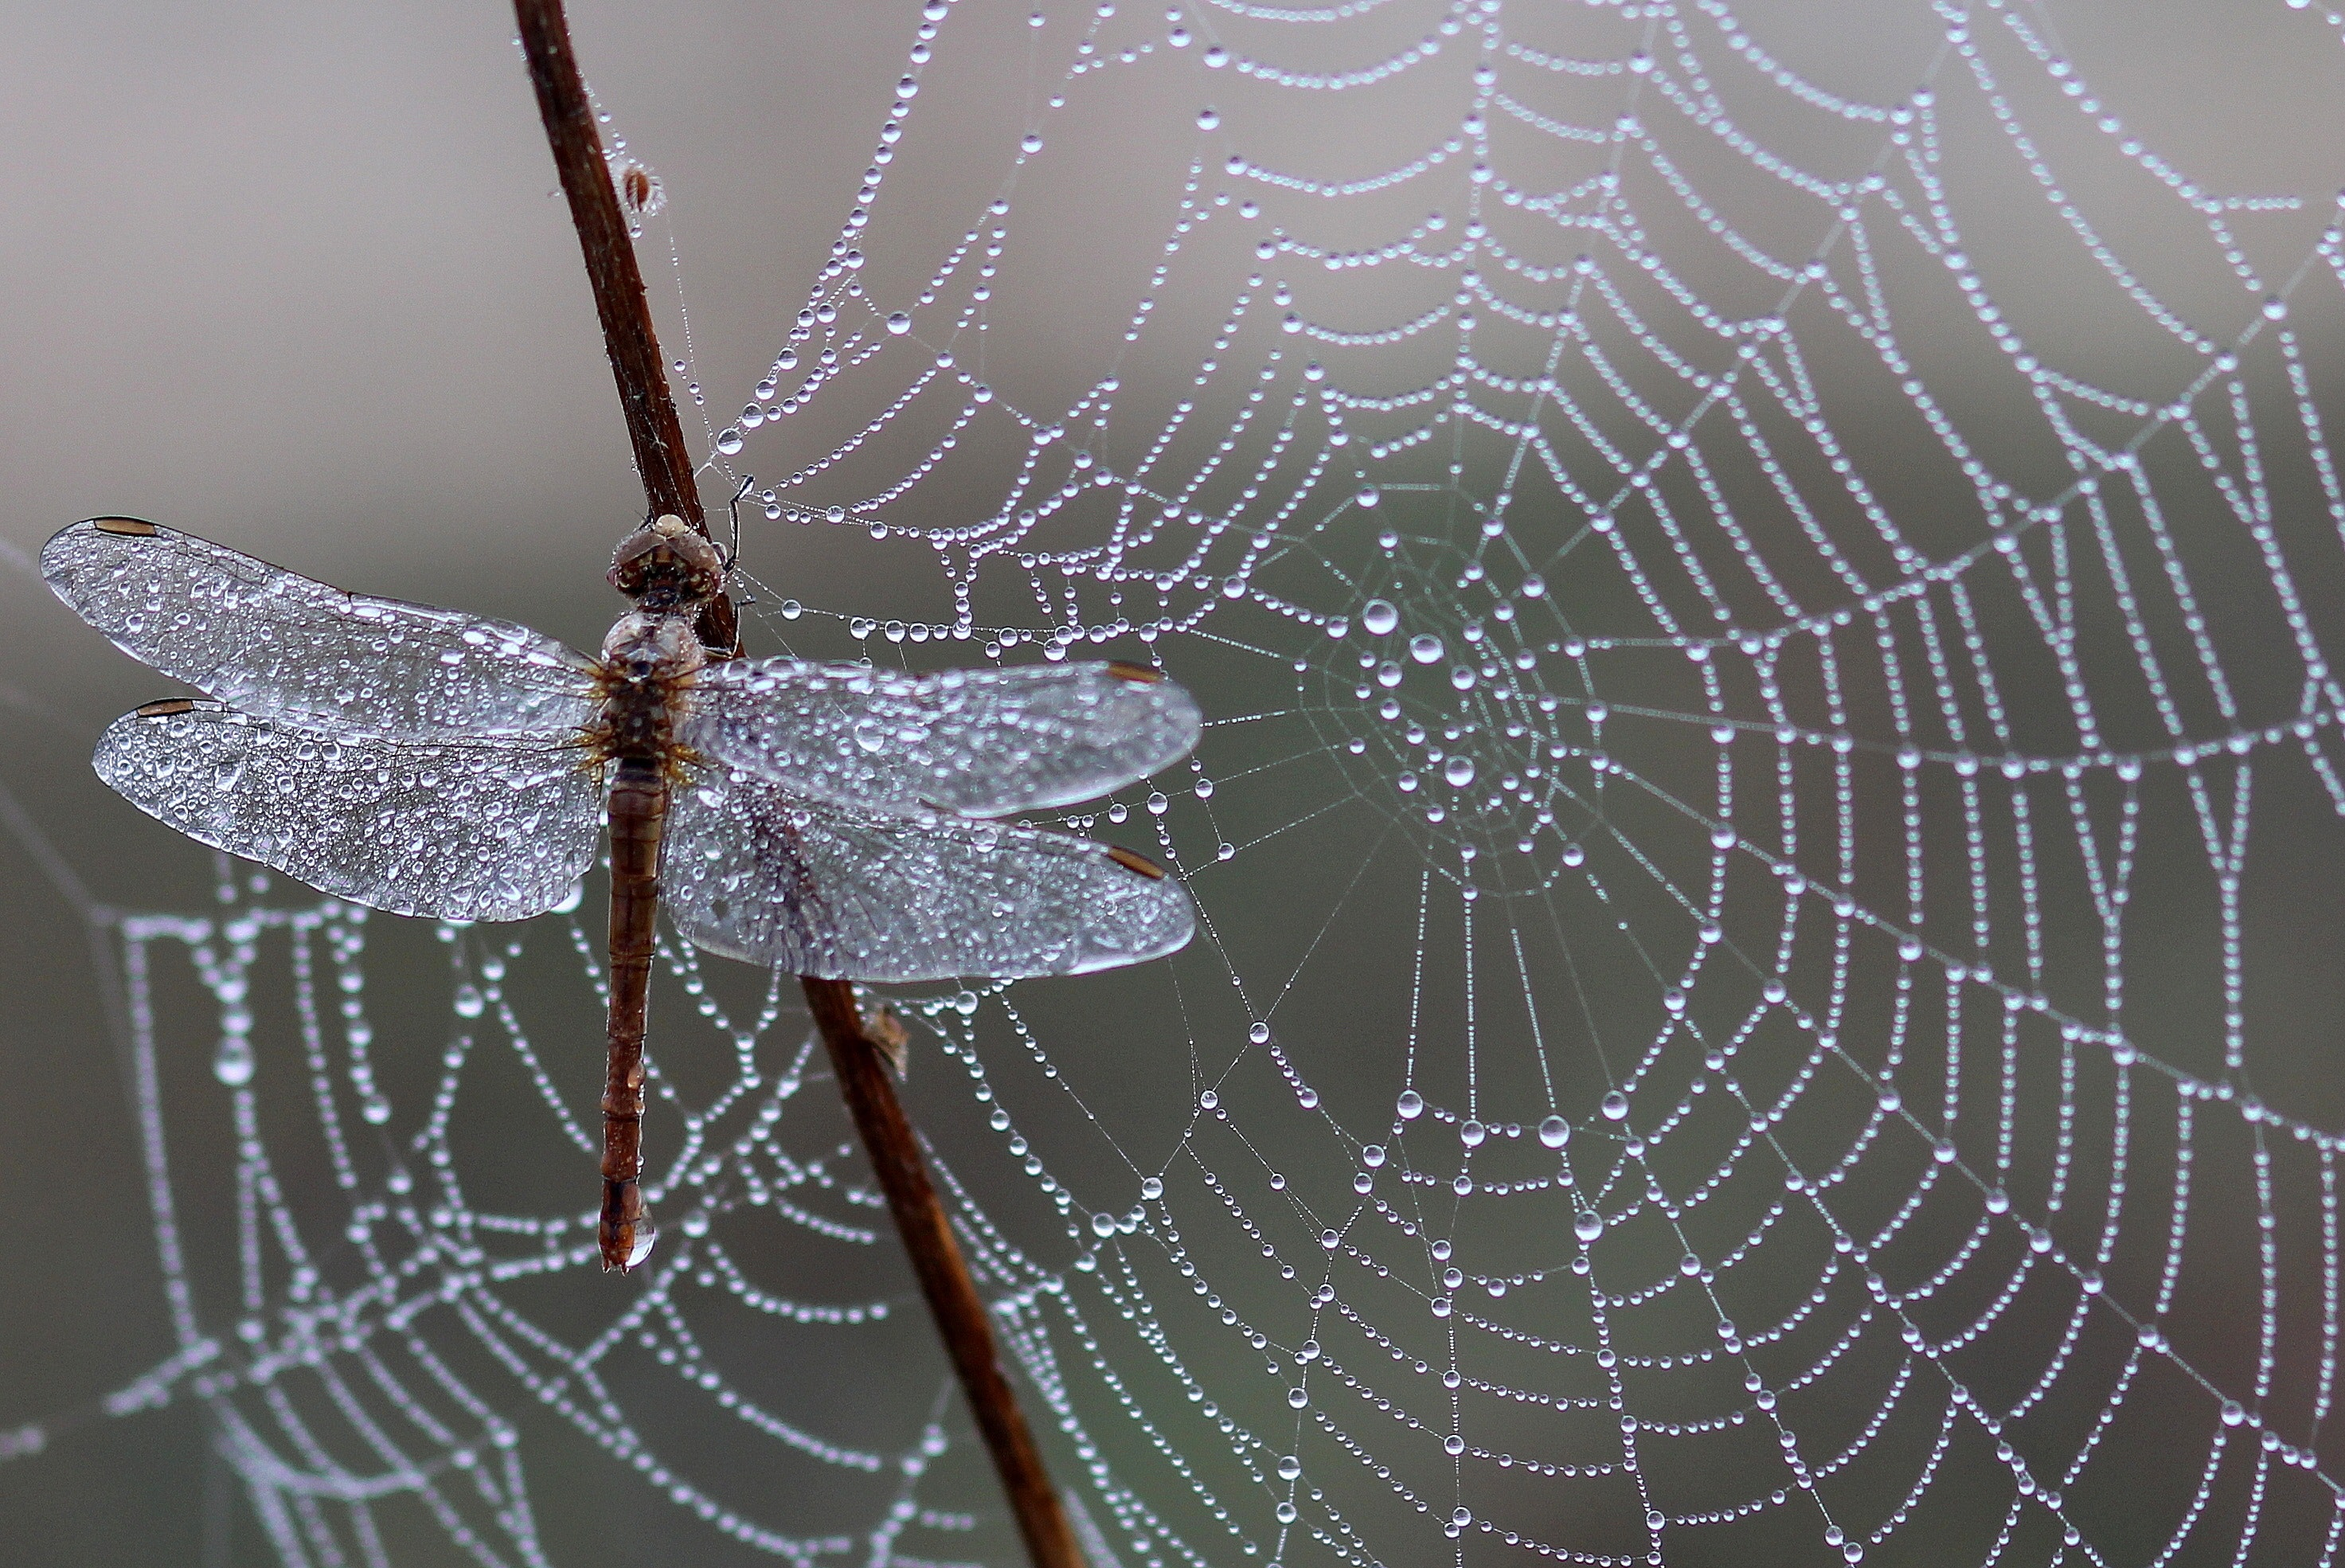 image of spider web